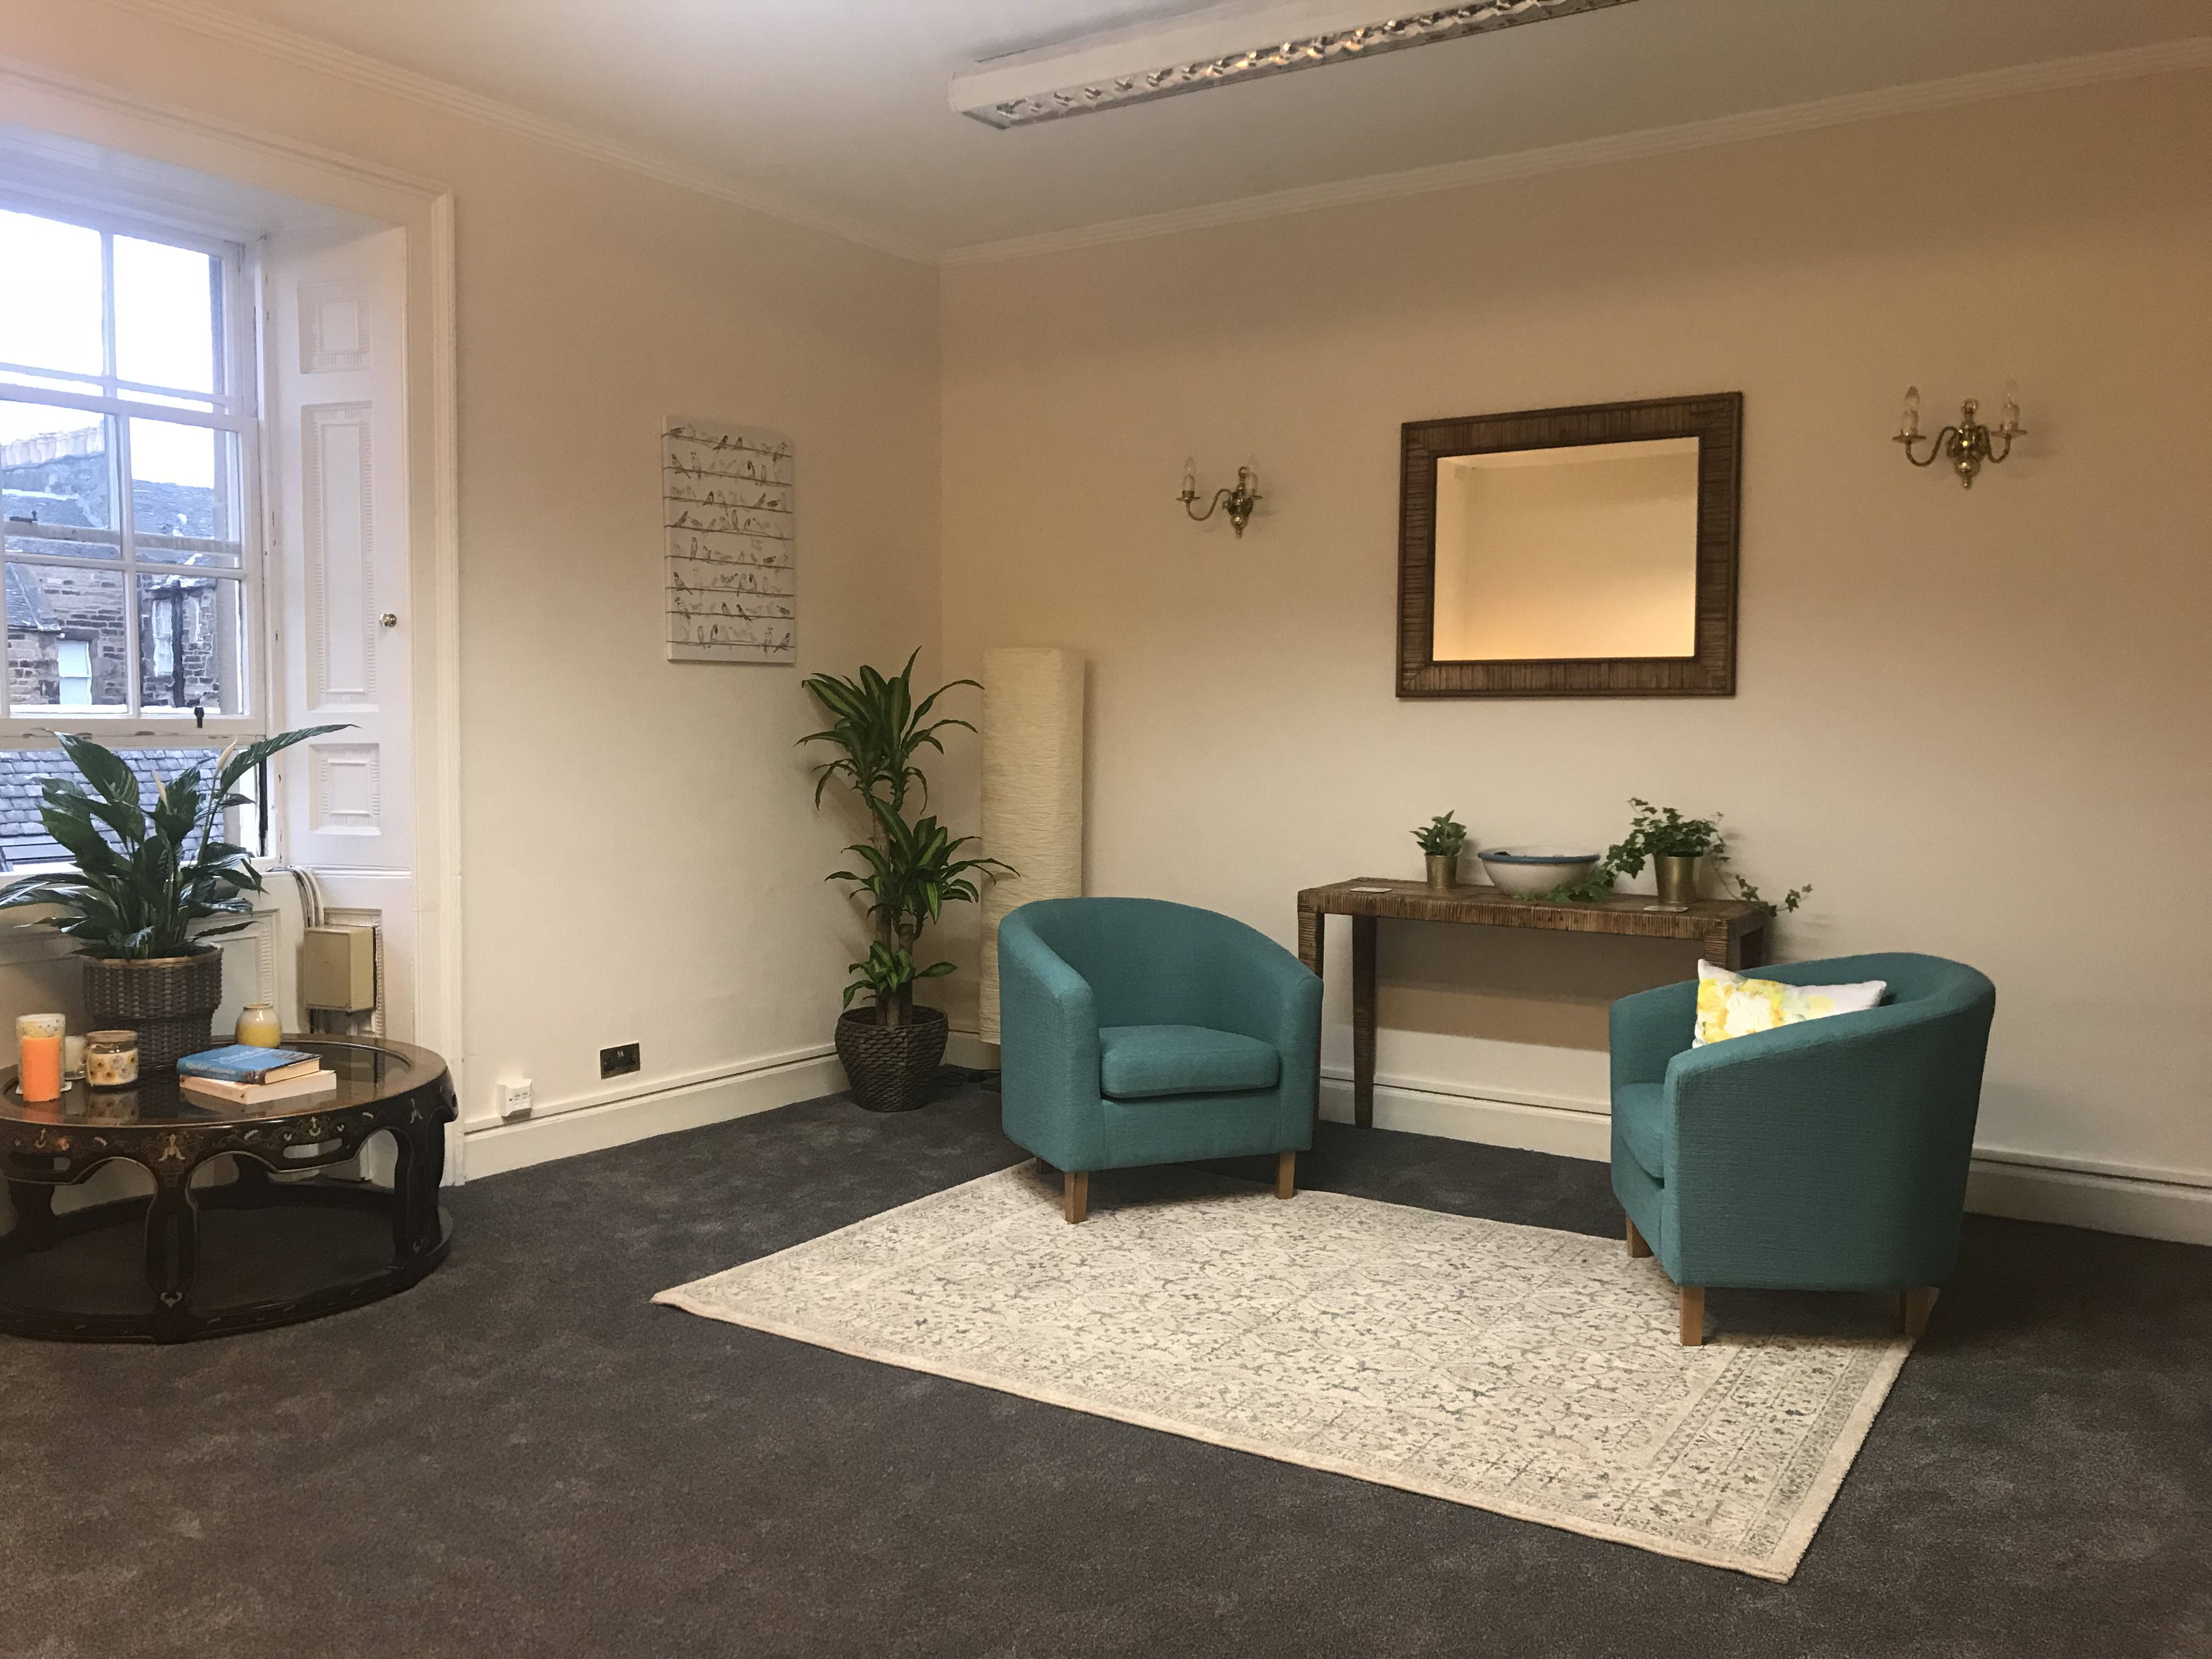 Good-sized therapy room in central Edinburgh